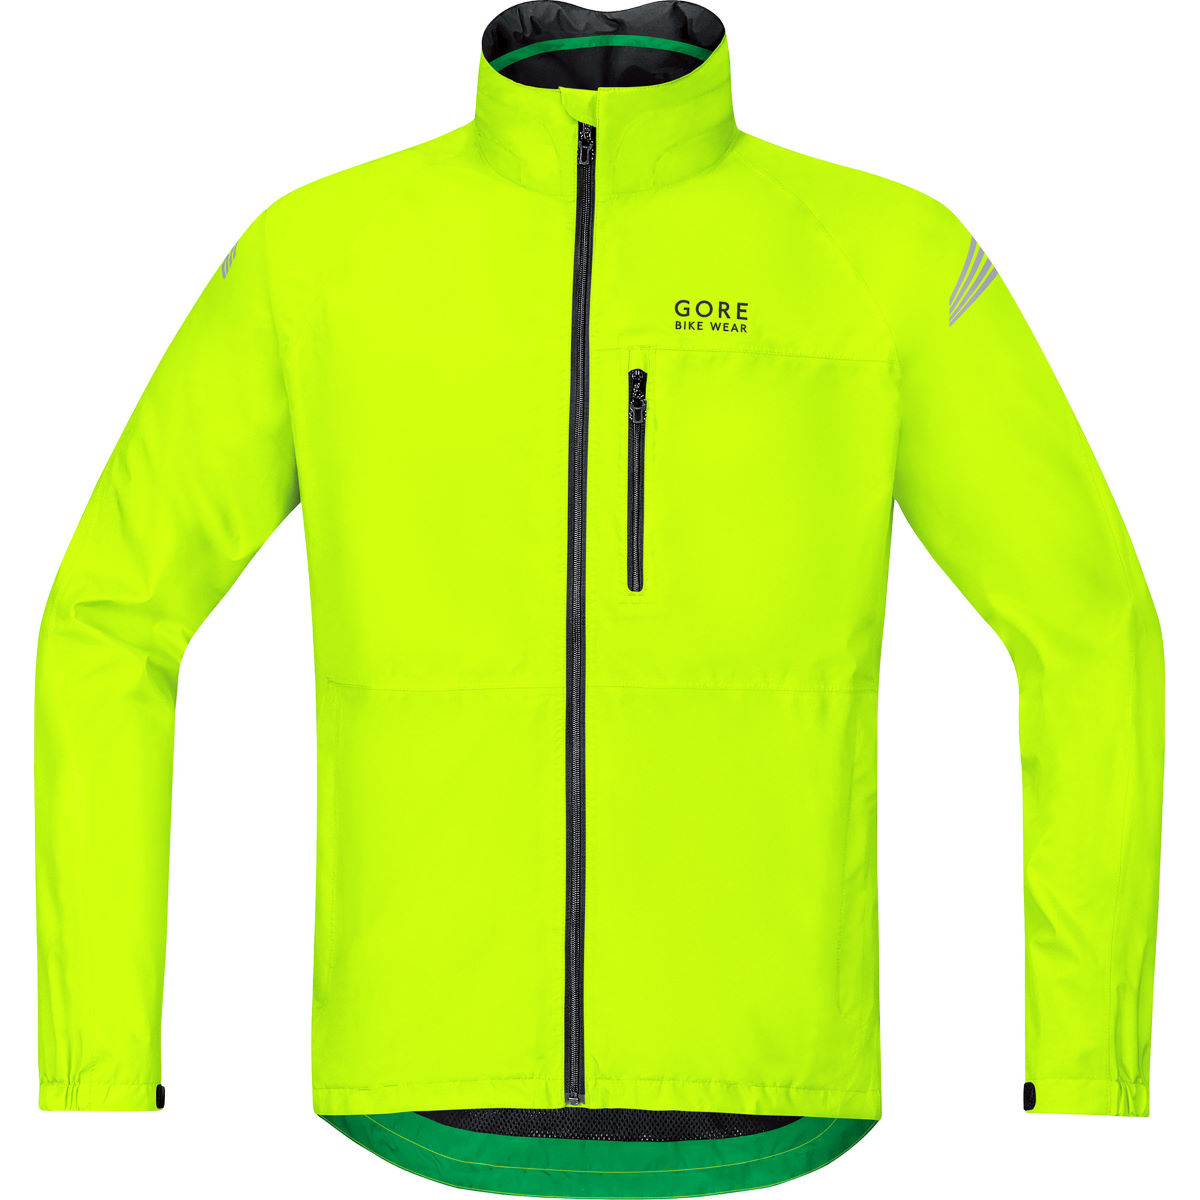 Veste Gore Bike Wear Element Gore-Tex - S Neon Yellow Vestes imperméables vélo